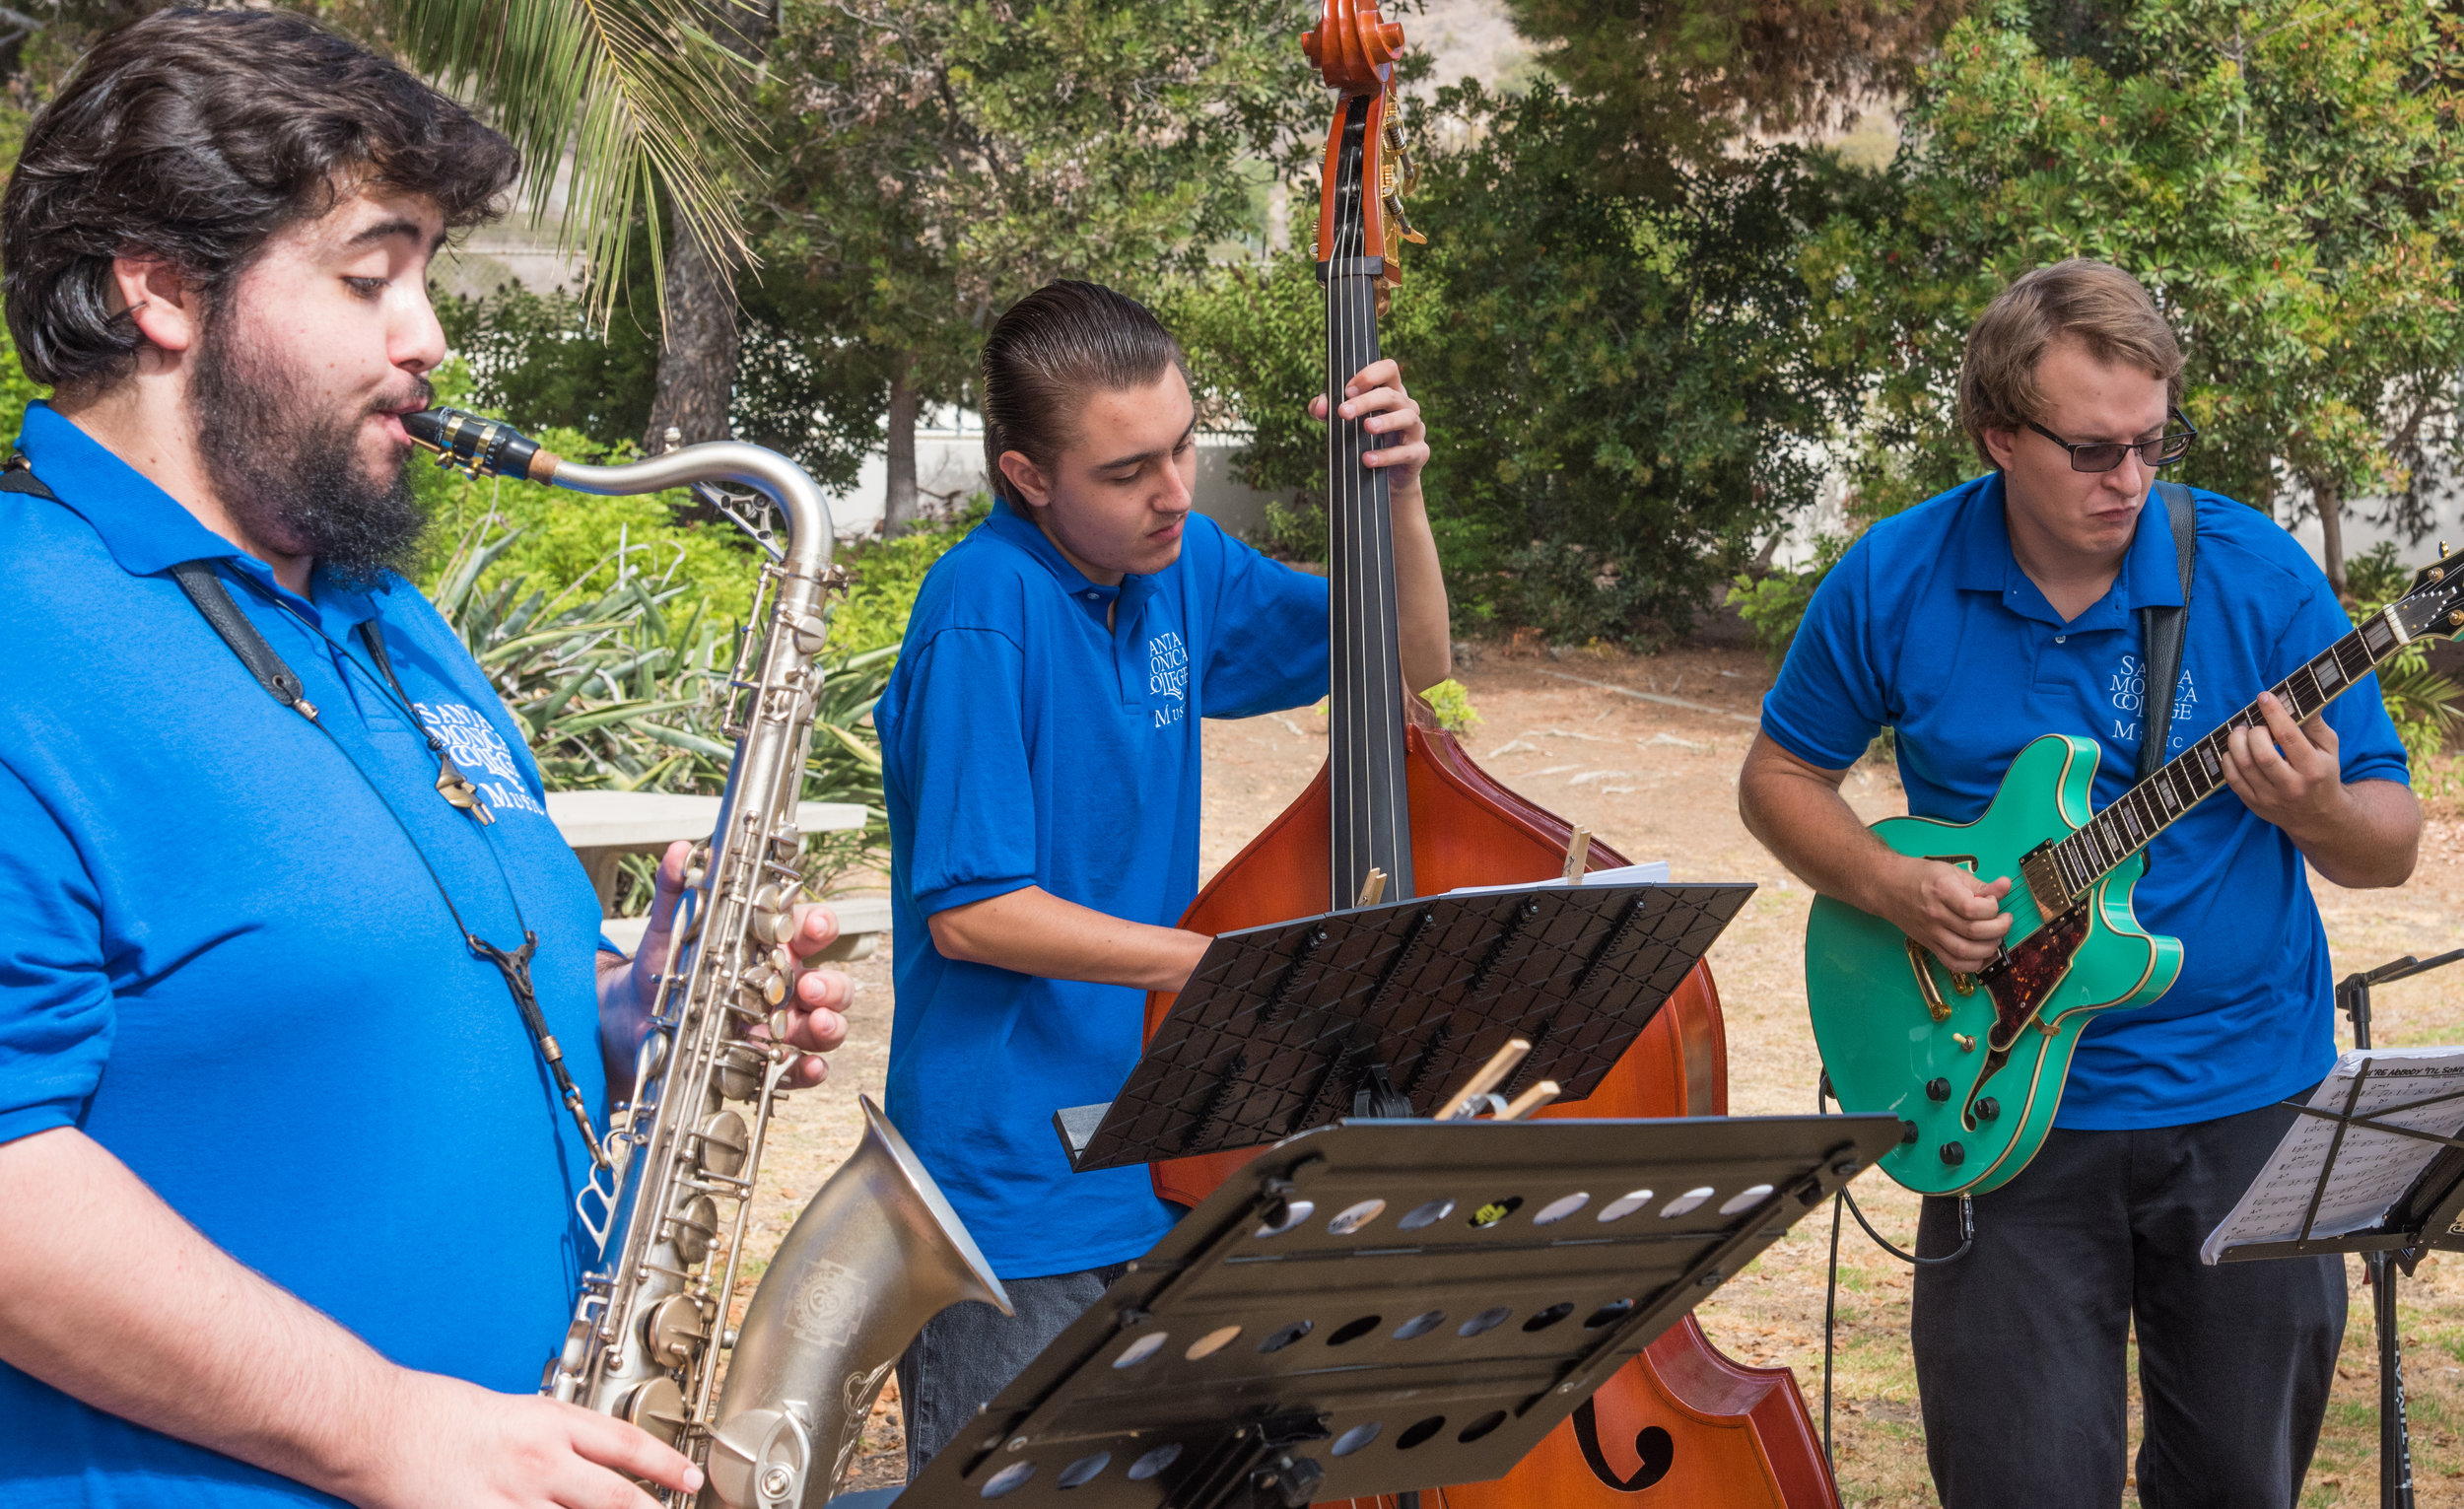 Christian Alva (left), Max Zwarych (center), and Malcom Fisher (right), jazz musicians from Santa Monica College's Applied Music program, perfrom shortly before the official ground breaking ceremony of the Santa Monica College Malibu Campus & Los Angeles County Sheriff's Substation on September 21, 2018 in Malibu, California.